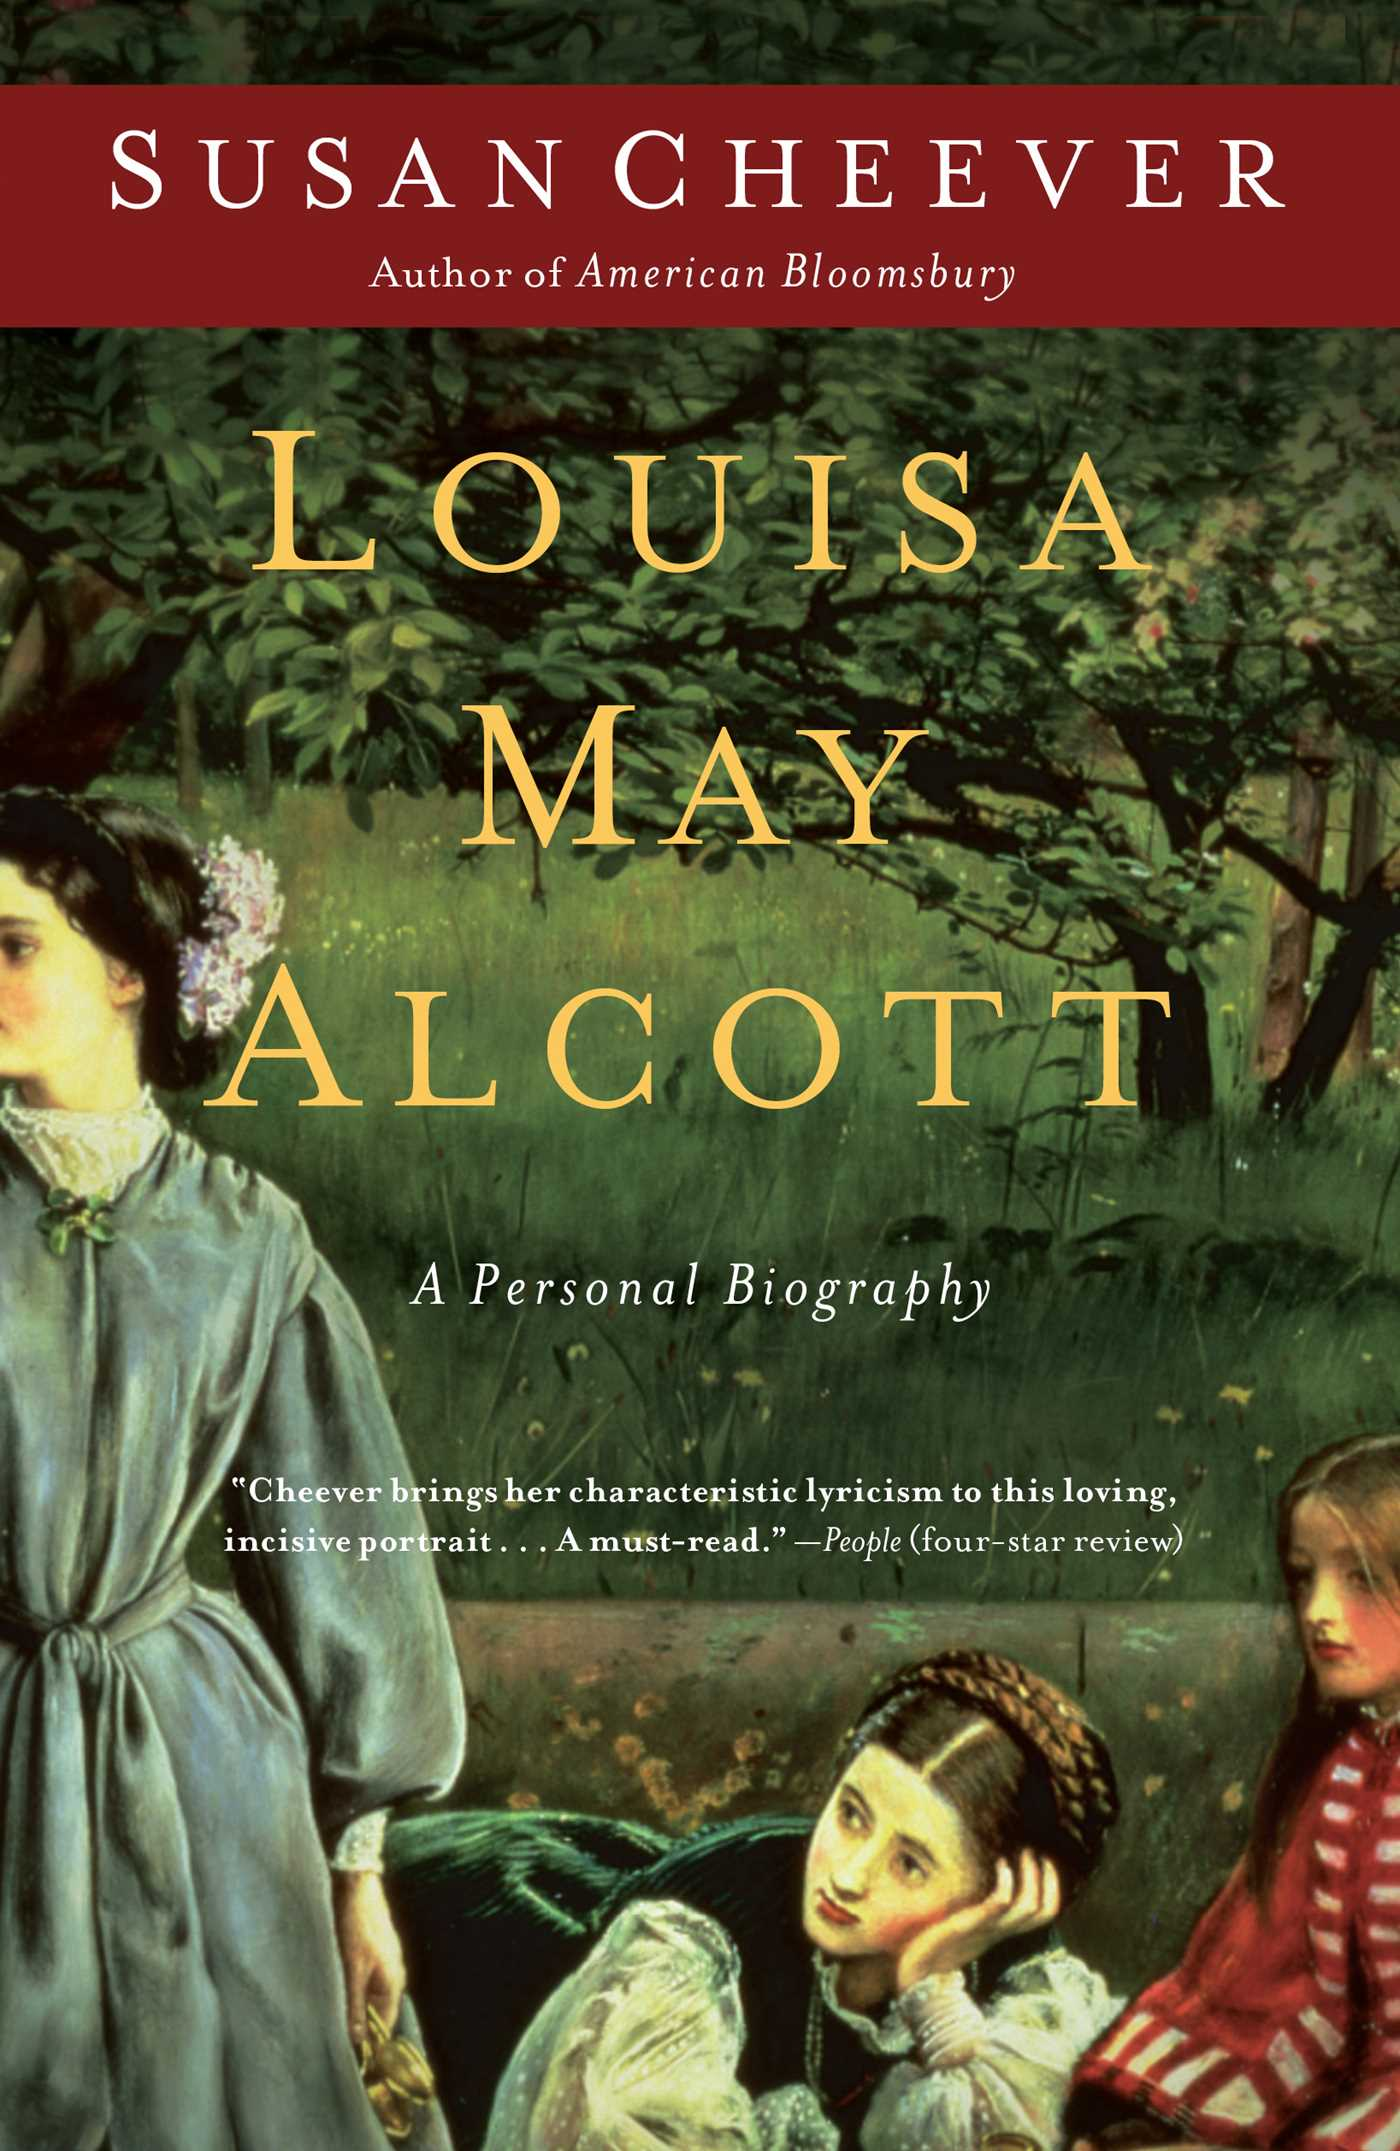 Louisa may alcott 9781416570240 hr